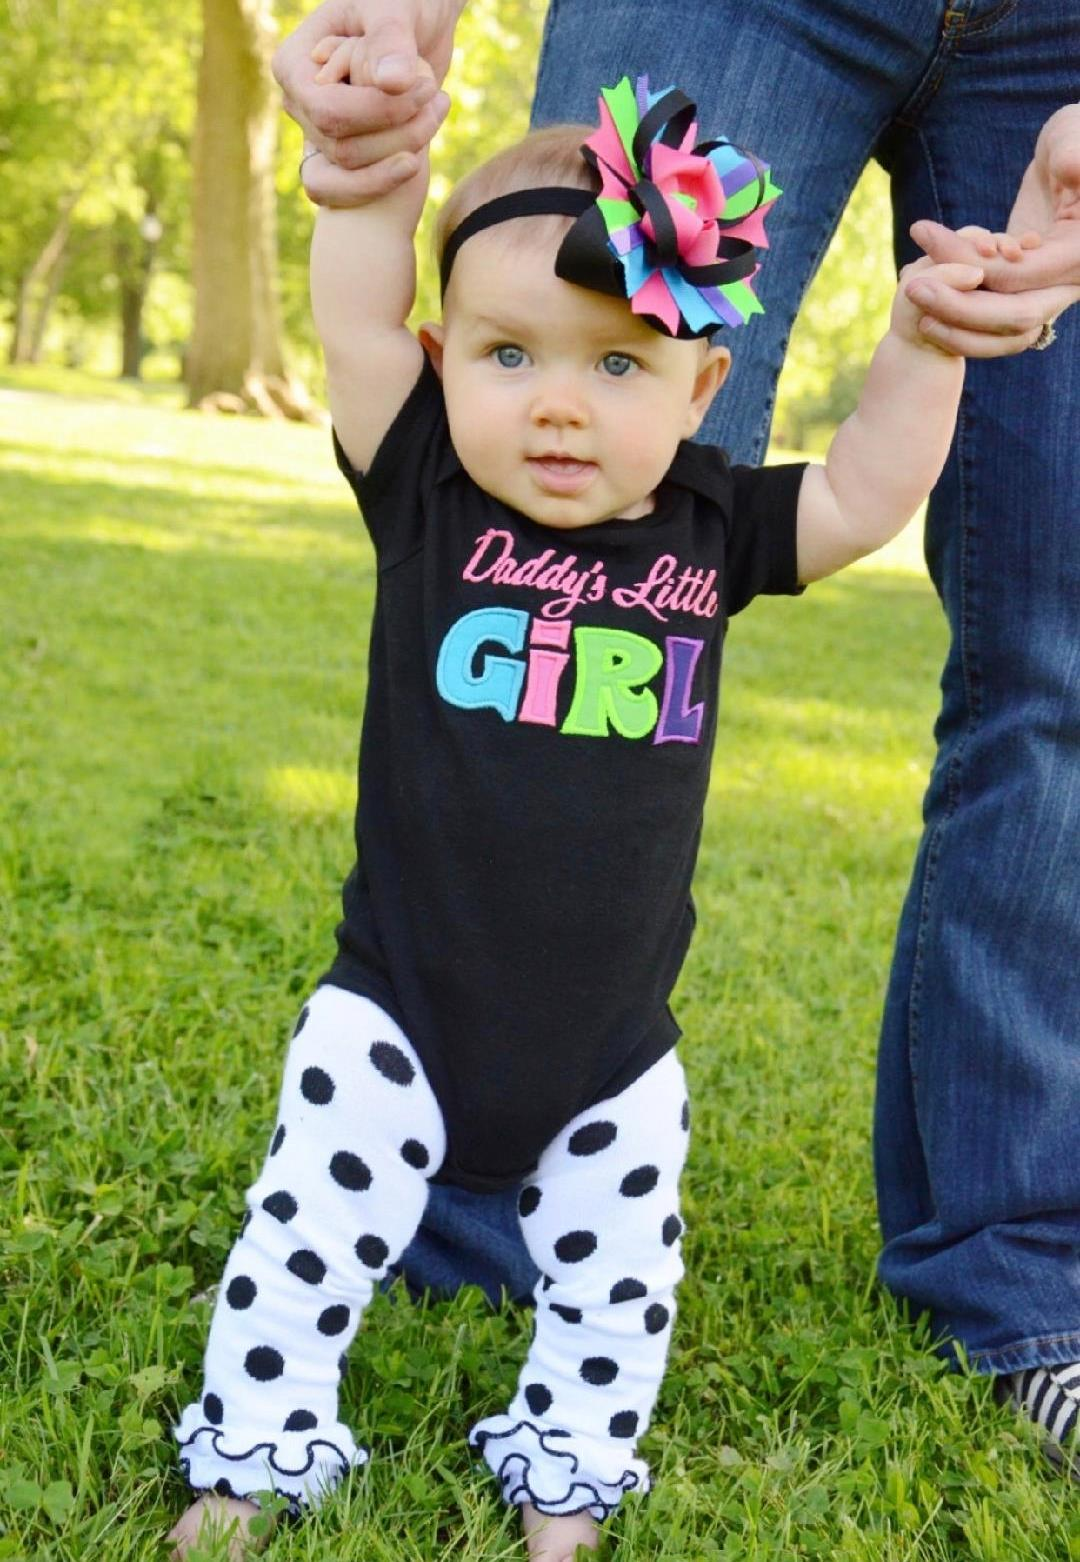 Daddy's Little Girl Bright Colored Bodysuit